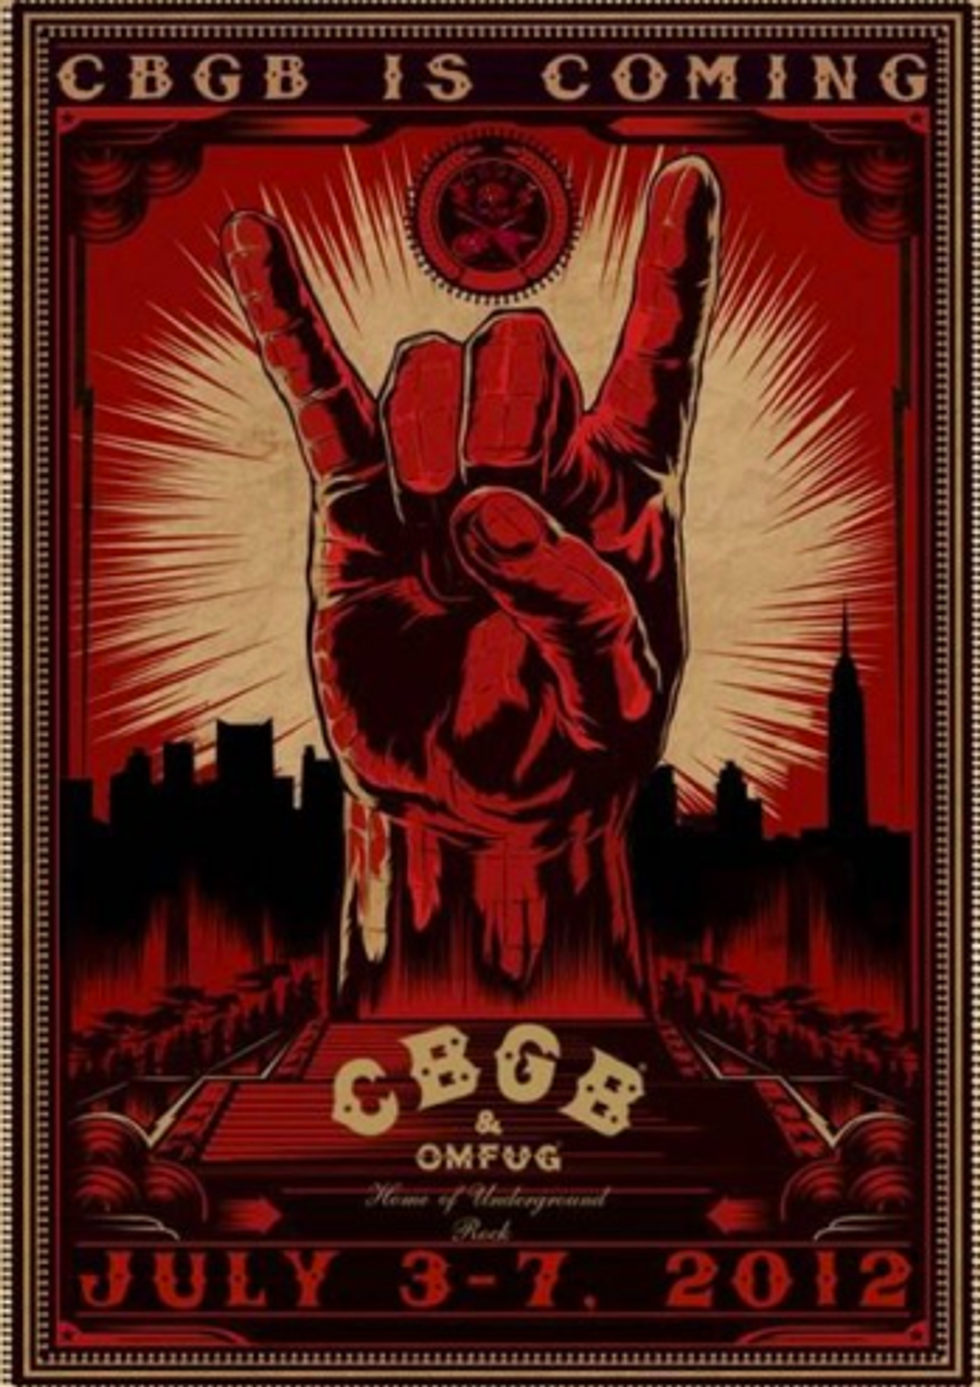 Update: CBGB Music Festival Confirmed, Club Will Possibly Re-Open Downtown